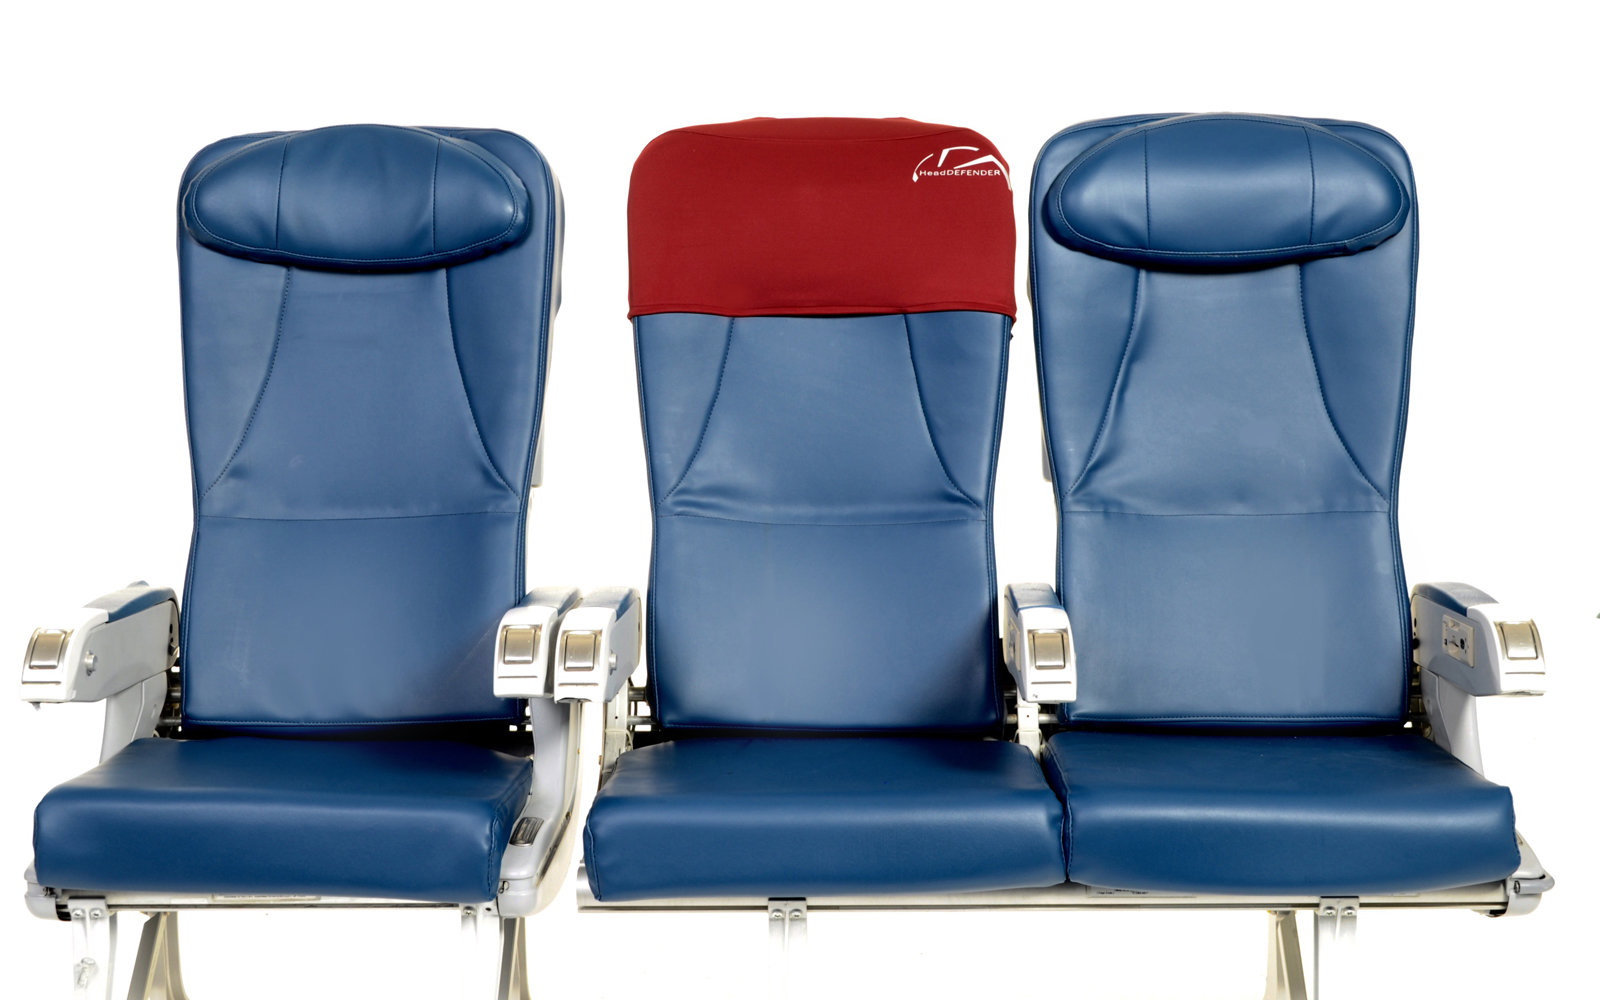 Protect Your Head From Airplane Germs With This Seat Cover